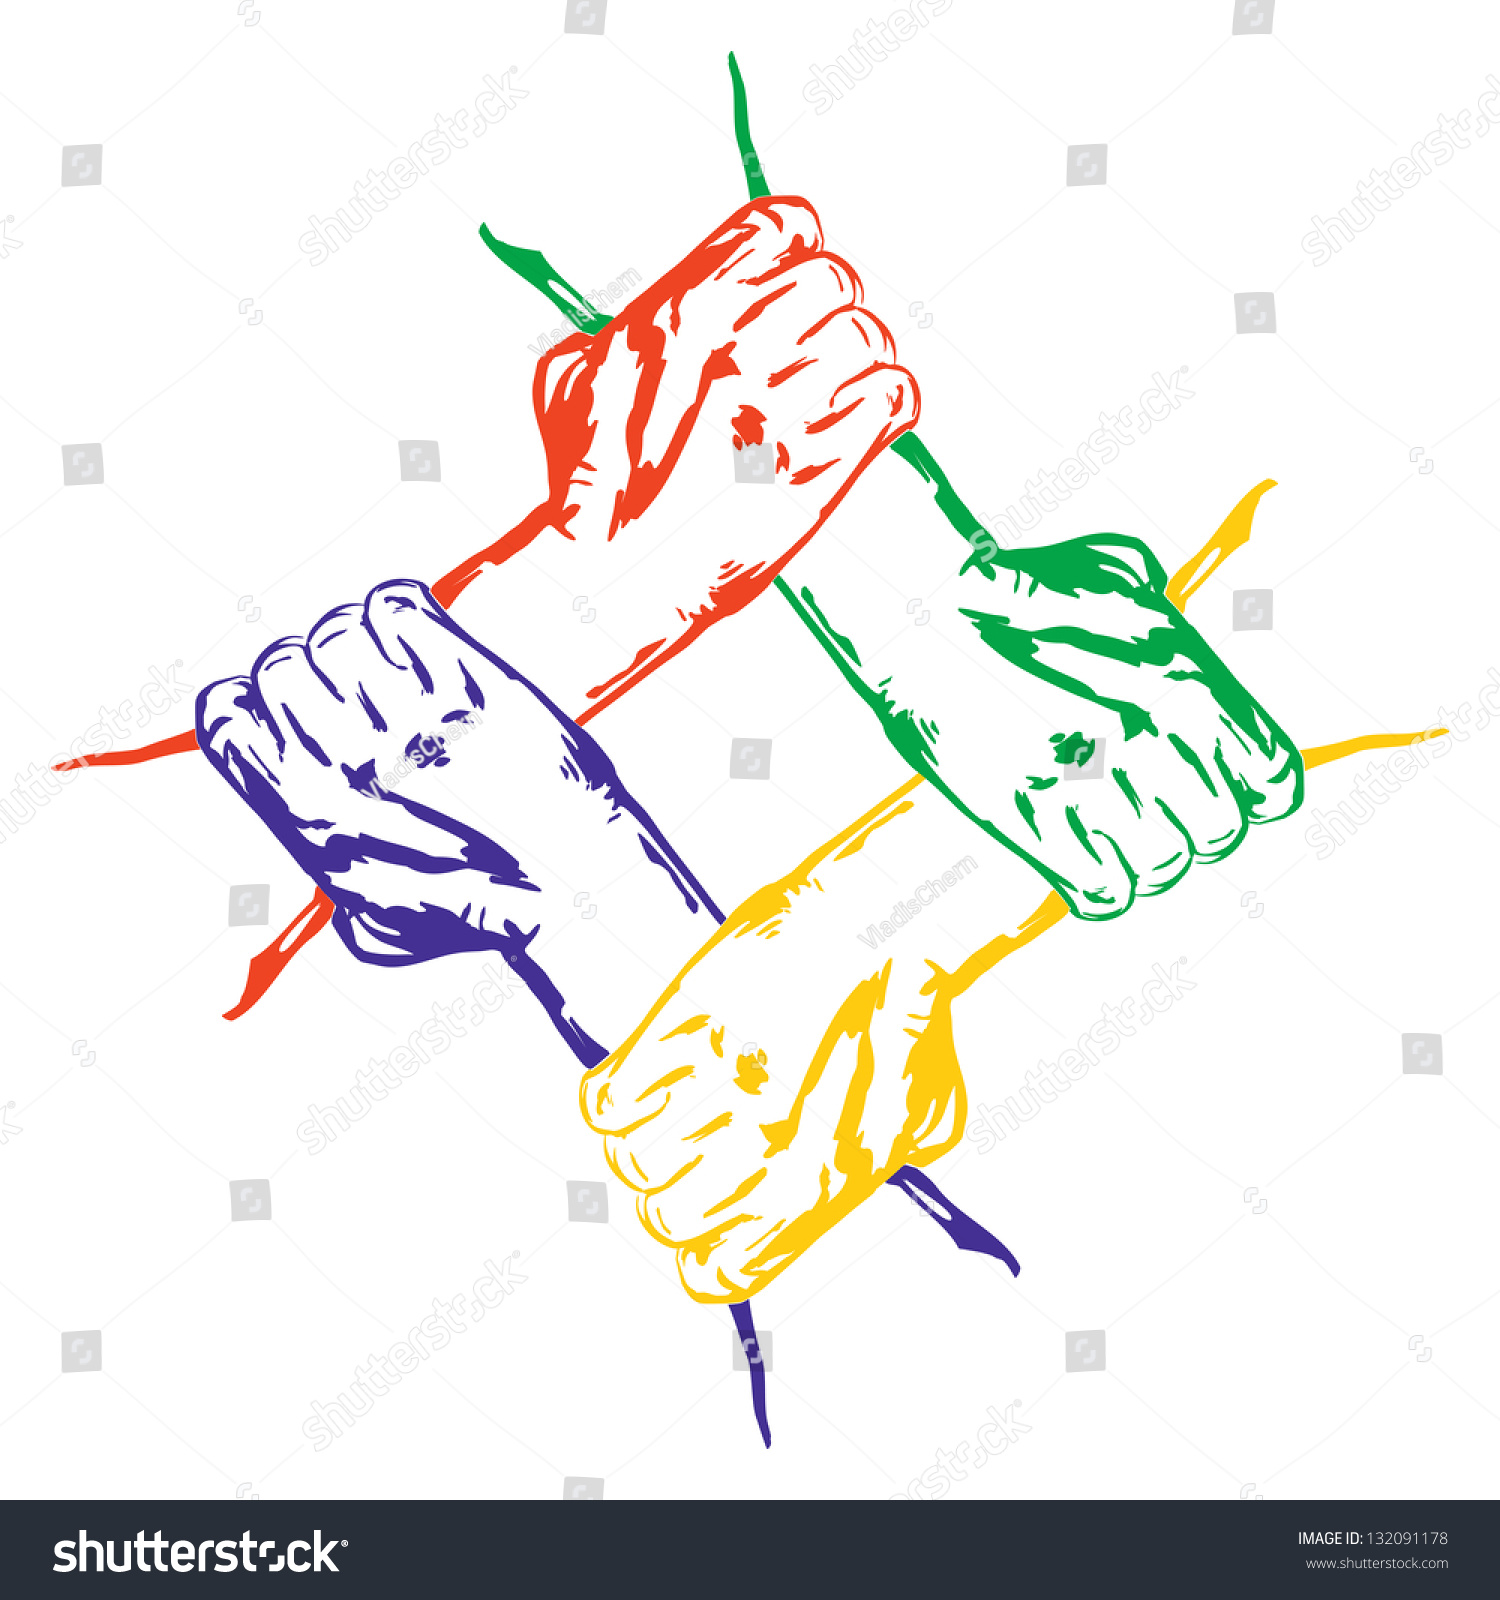 Vector Drawing Lines Unity : Hands holding each other unity cartoon stock vector